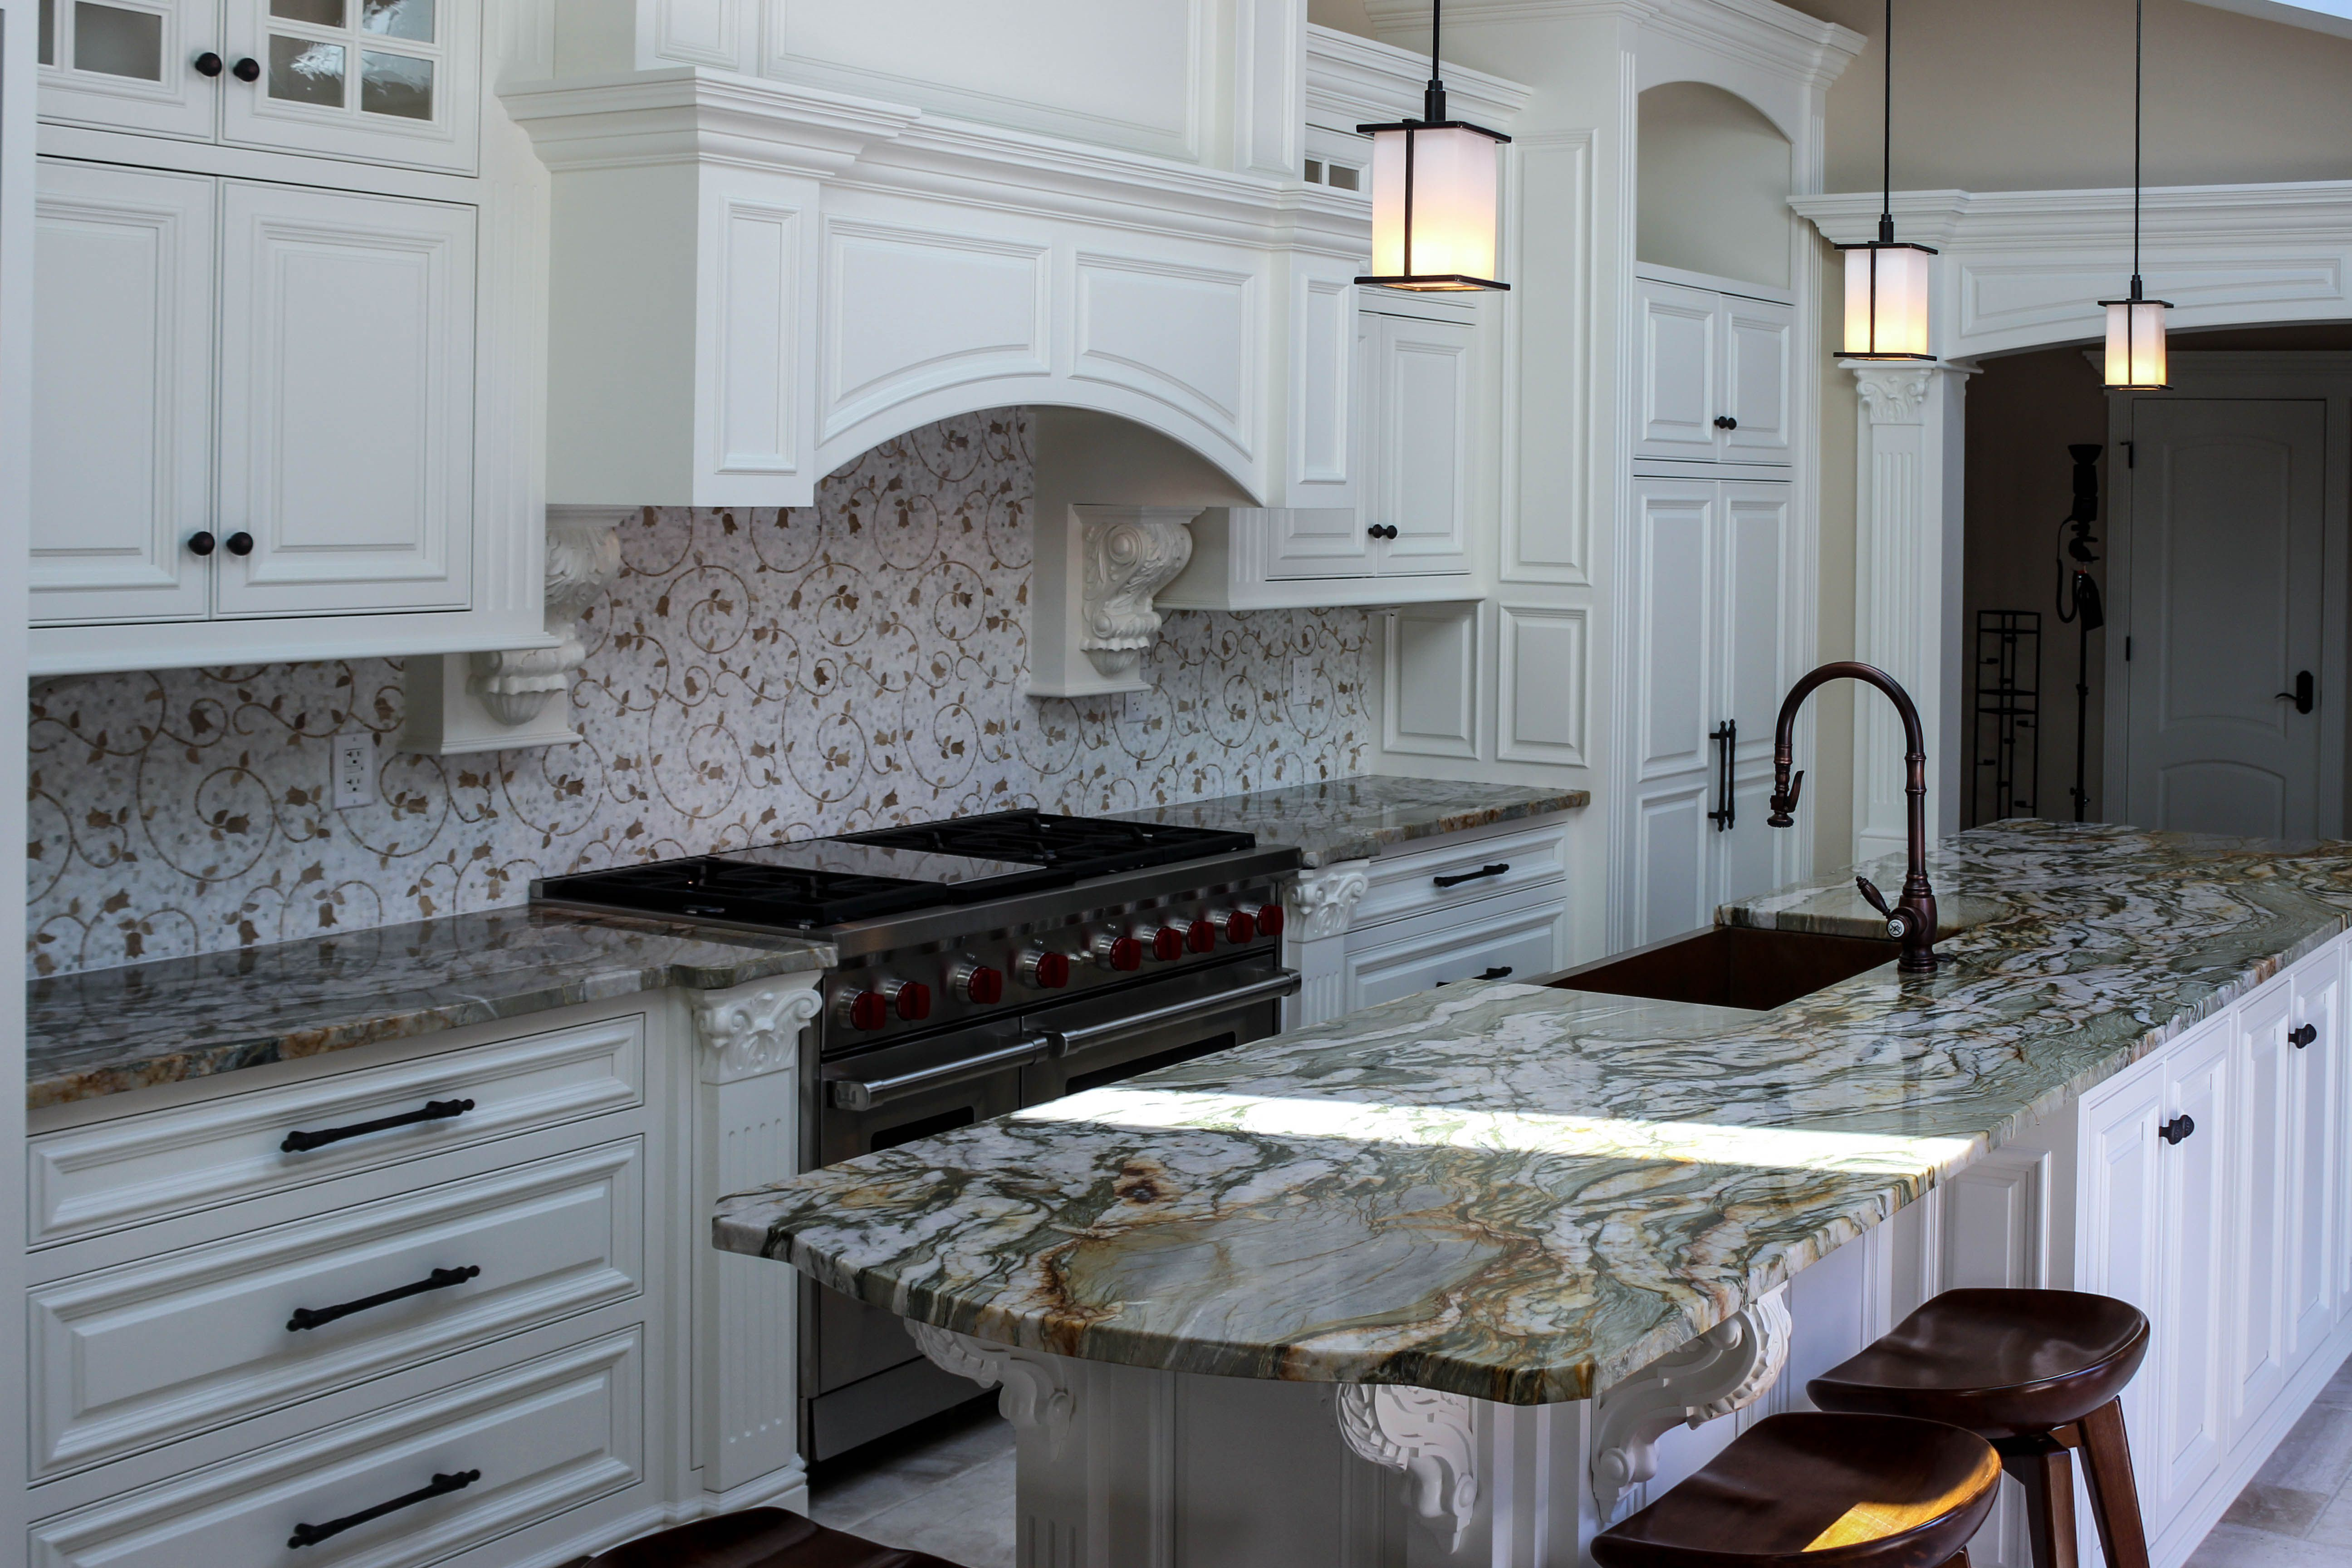 Custom Fabricated Green, Orange And White Granite Countertop For A Home In  Pittsburgh, PA